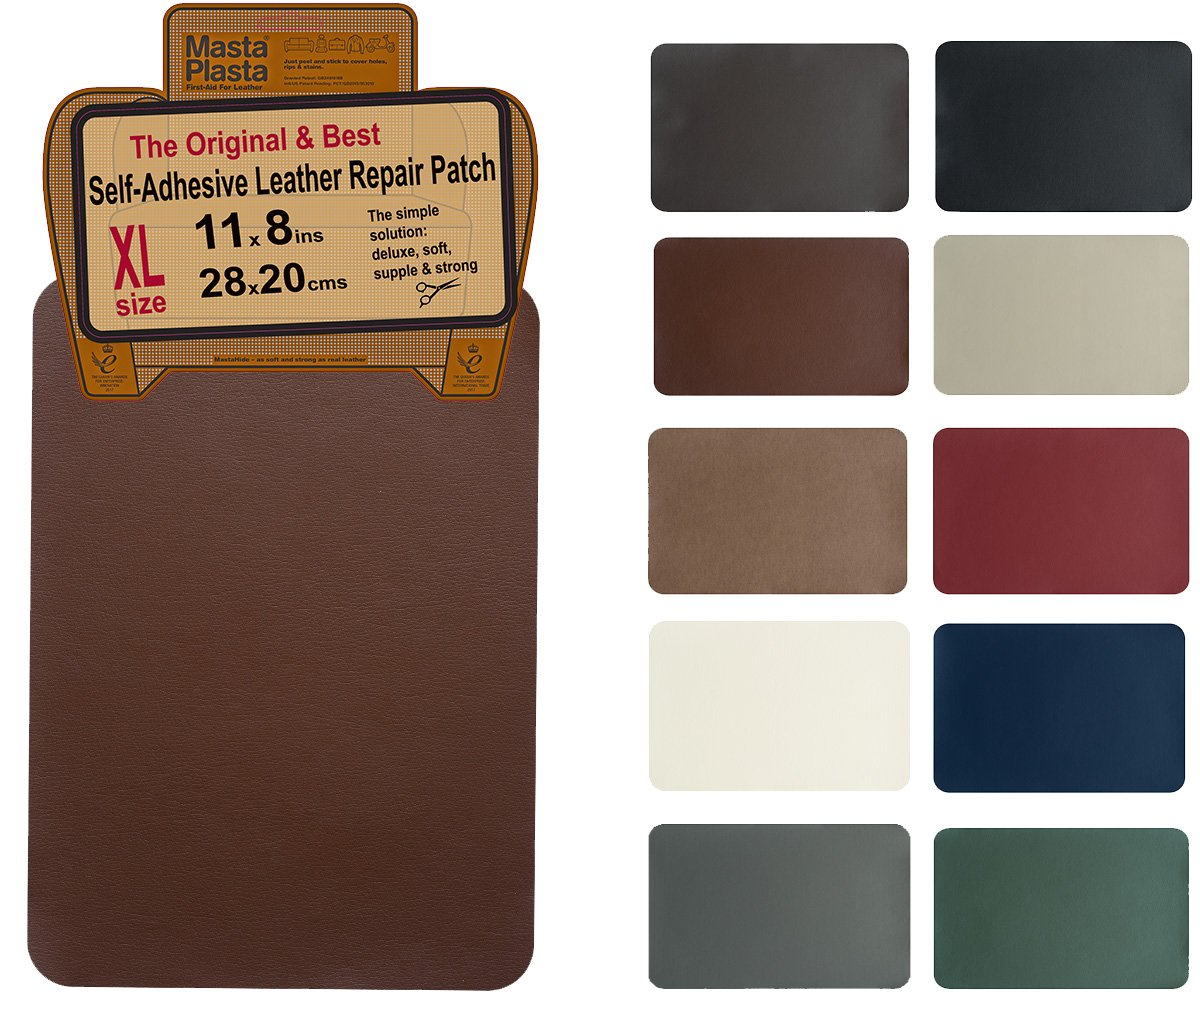 MastaPlasta, Leather Repair Patch